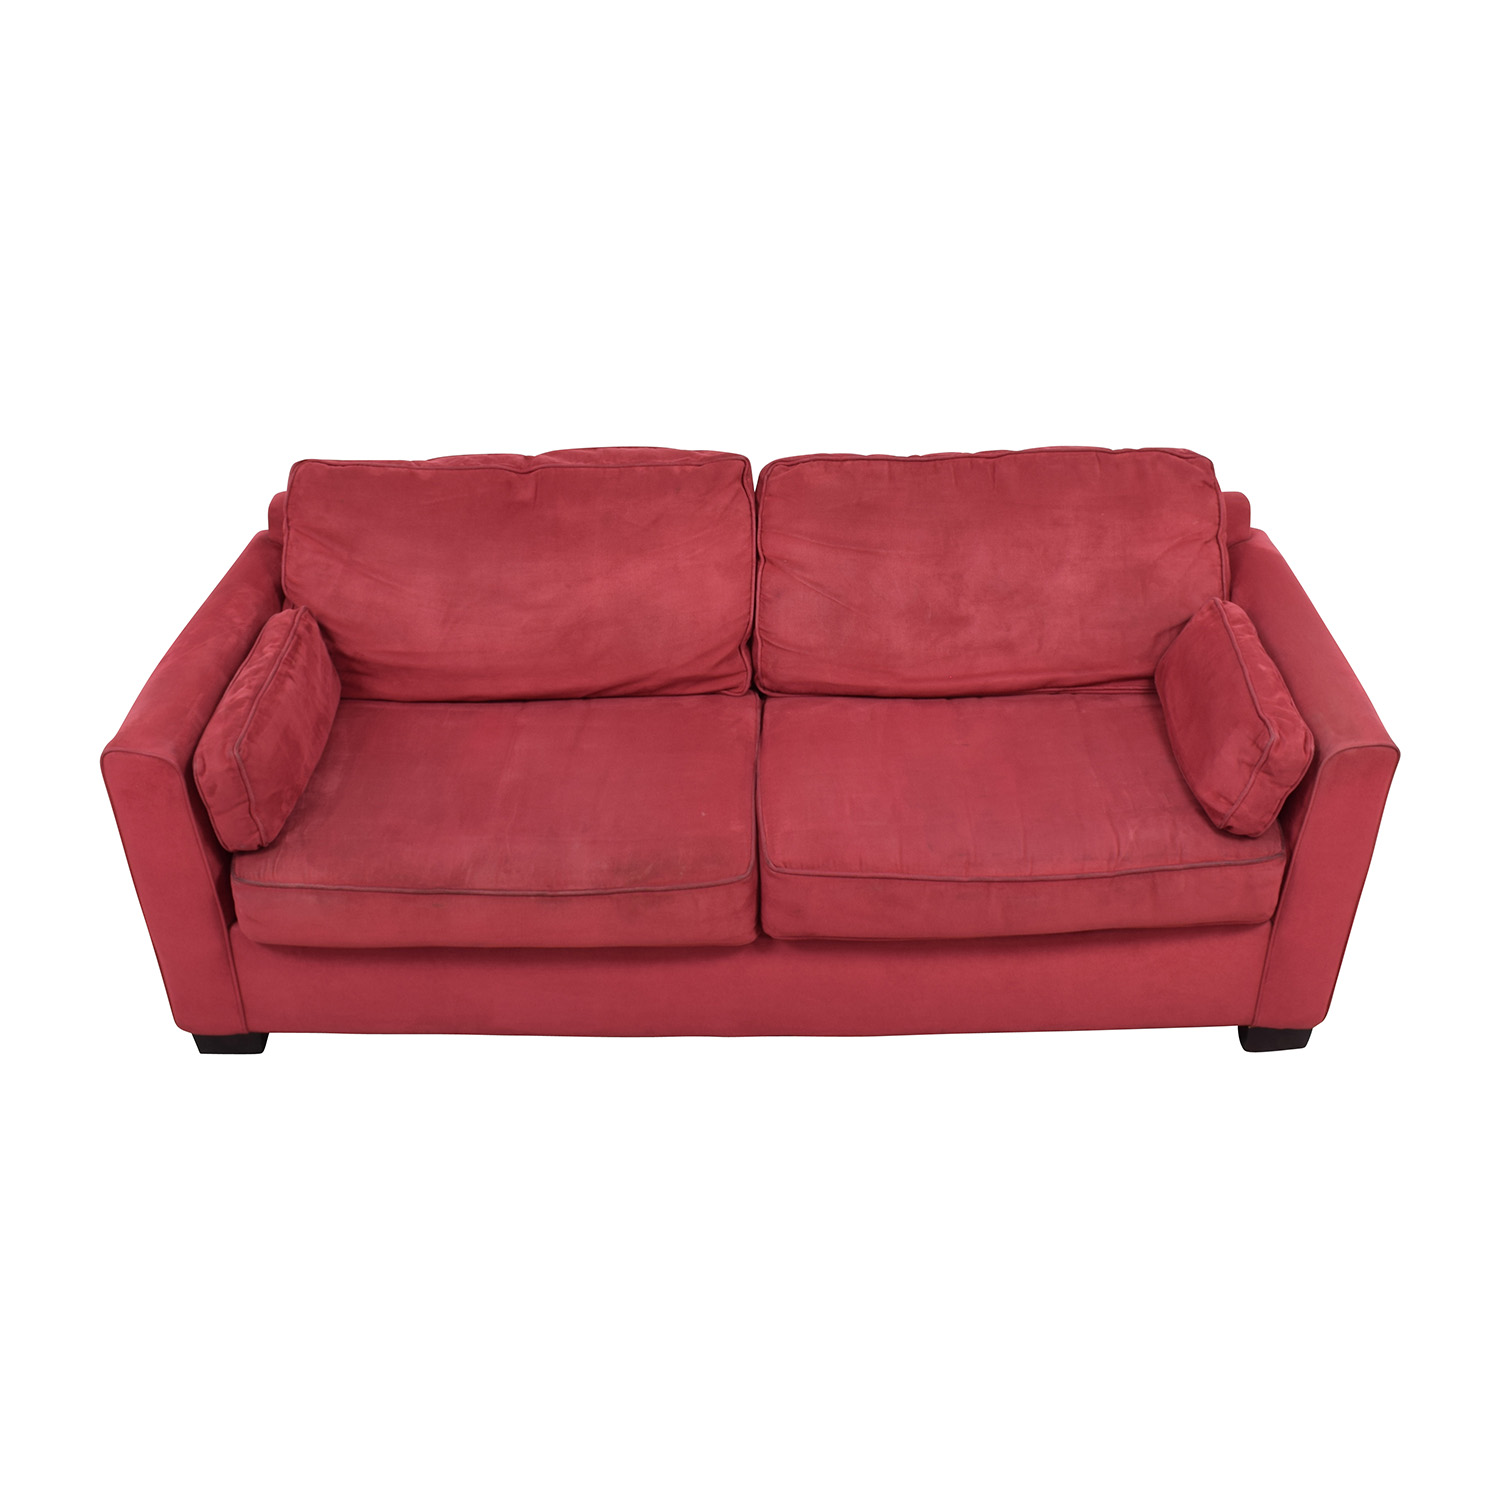 ... Shop Bloomingdales Bloomingdaleu0027s Classic Low Profile Red Couch Online  ...